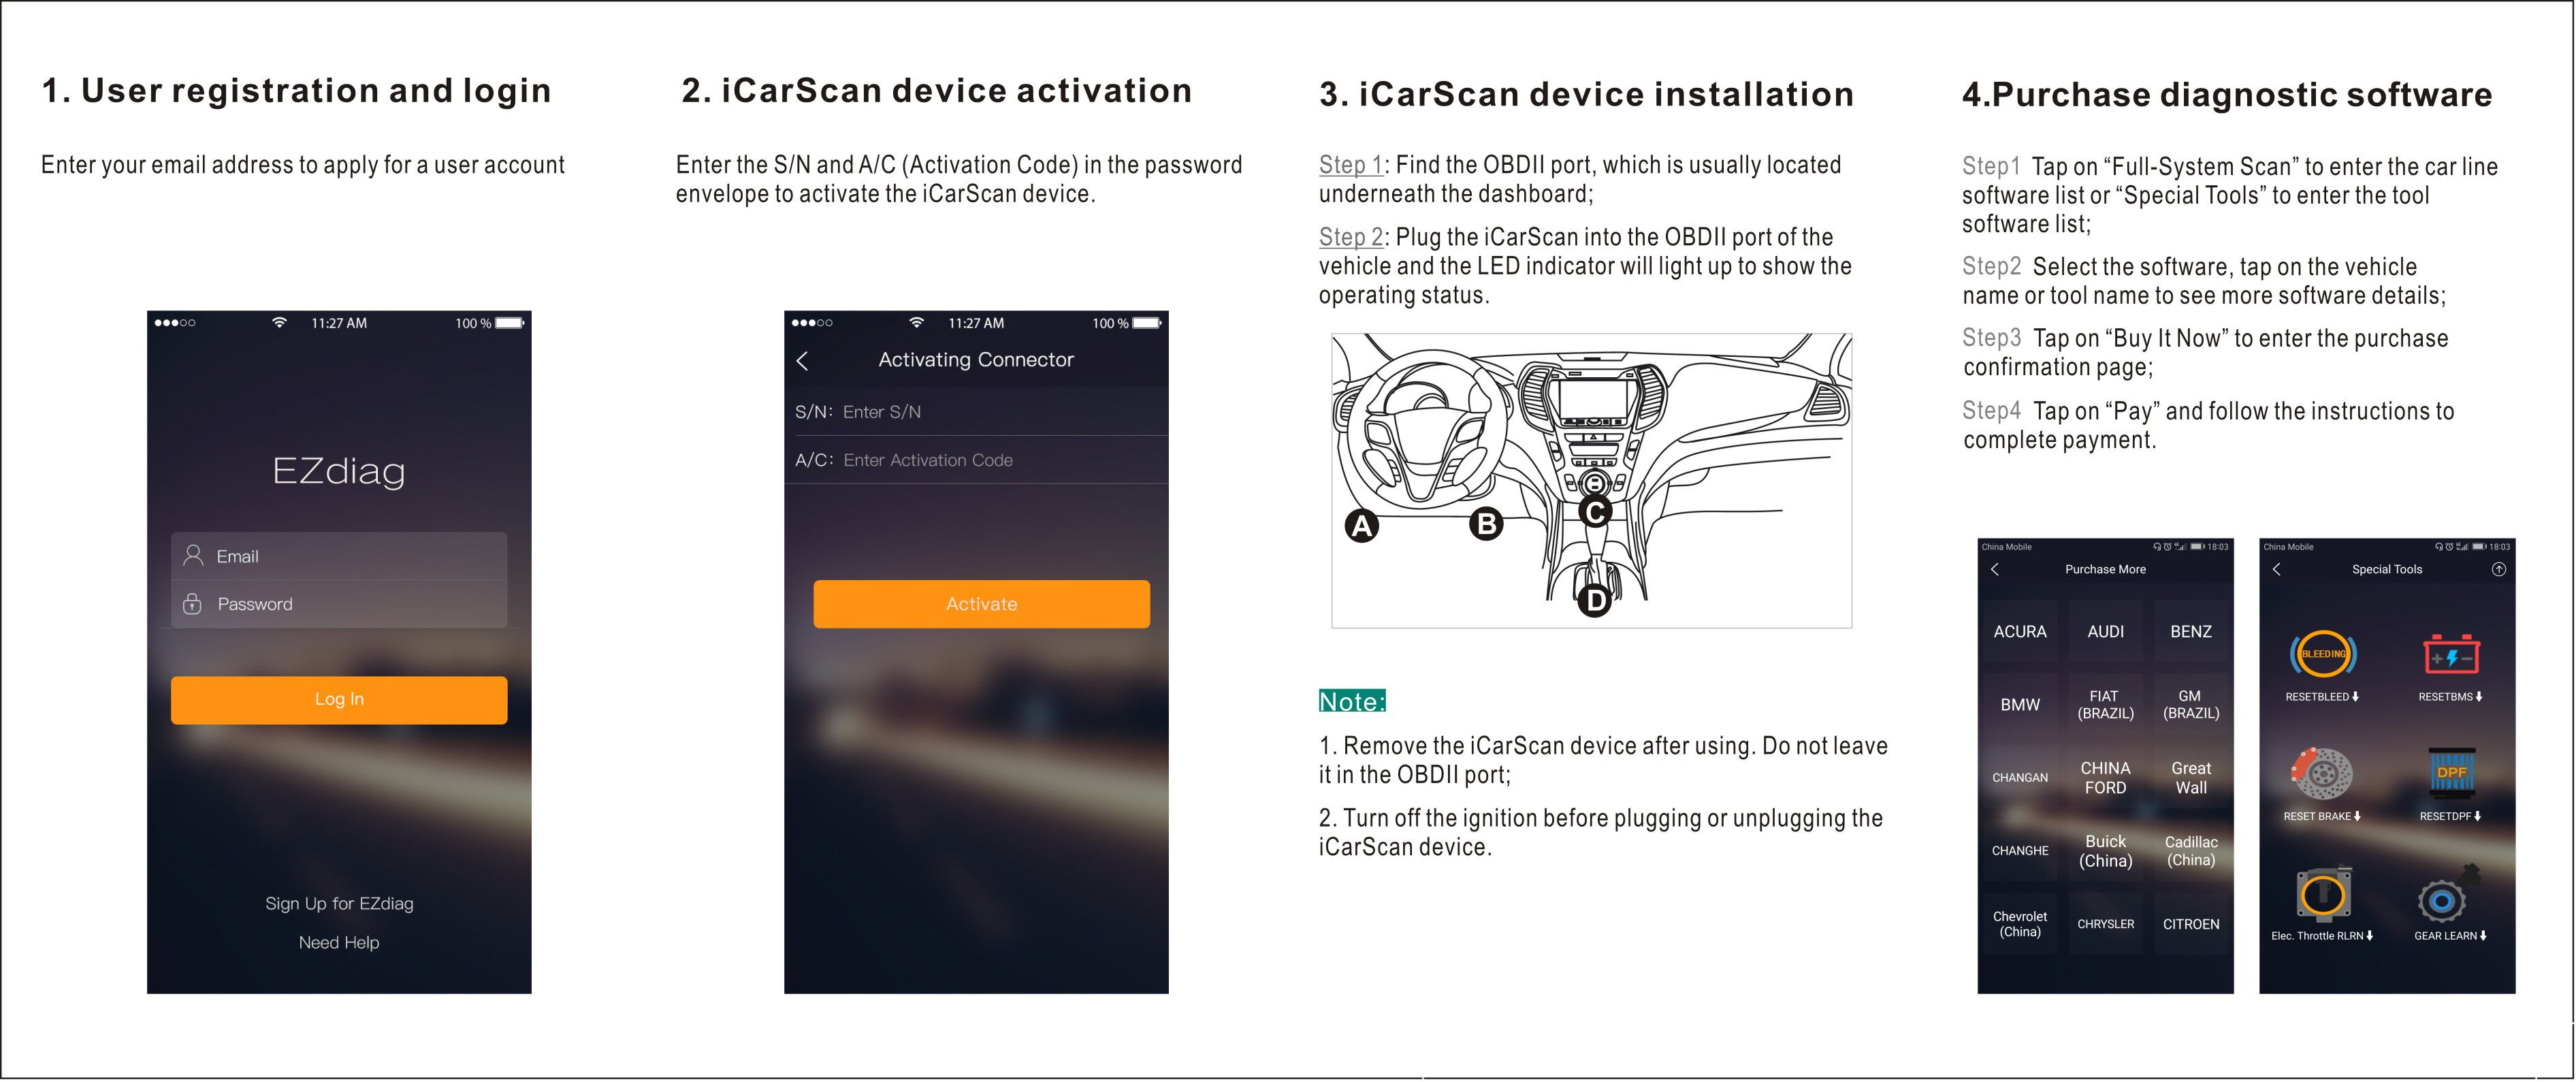 Launch ICarScan Full Systems Diagnostic Tool Bluetooth